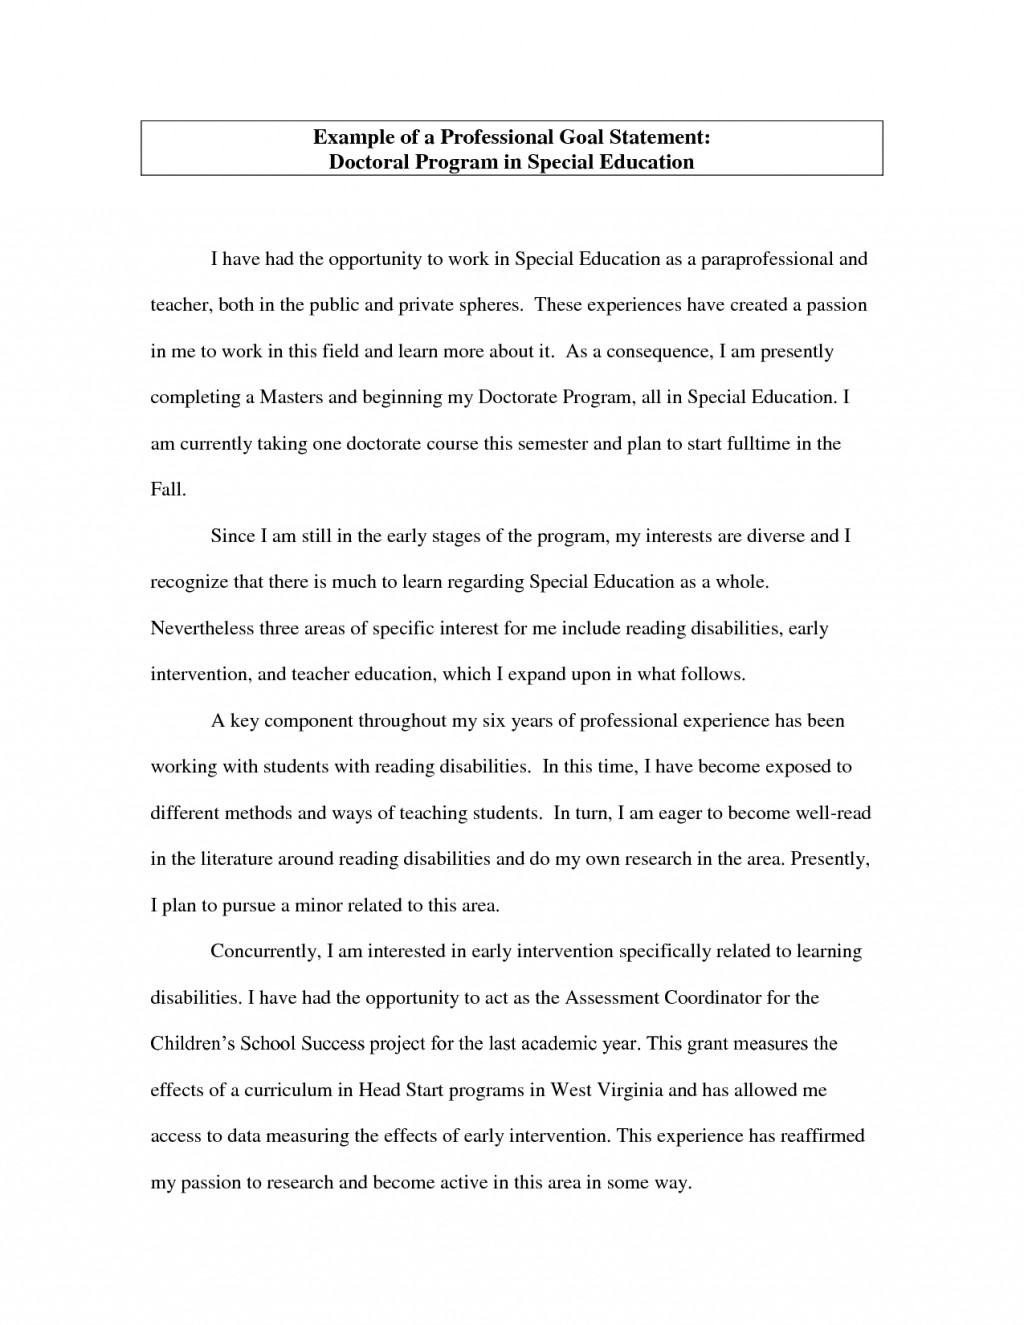 007 Essay Example Career Goal Statement Zdxttkpg Goals Surprising Examples Personal Professional Educational Life Large